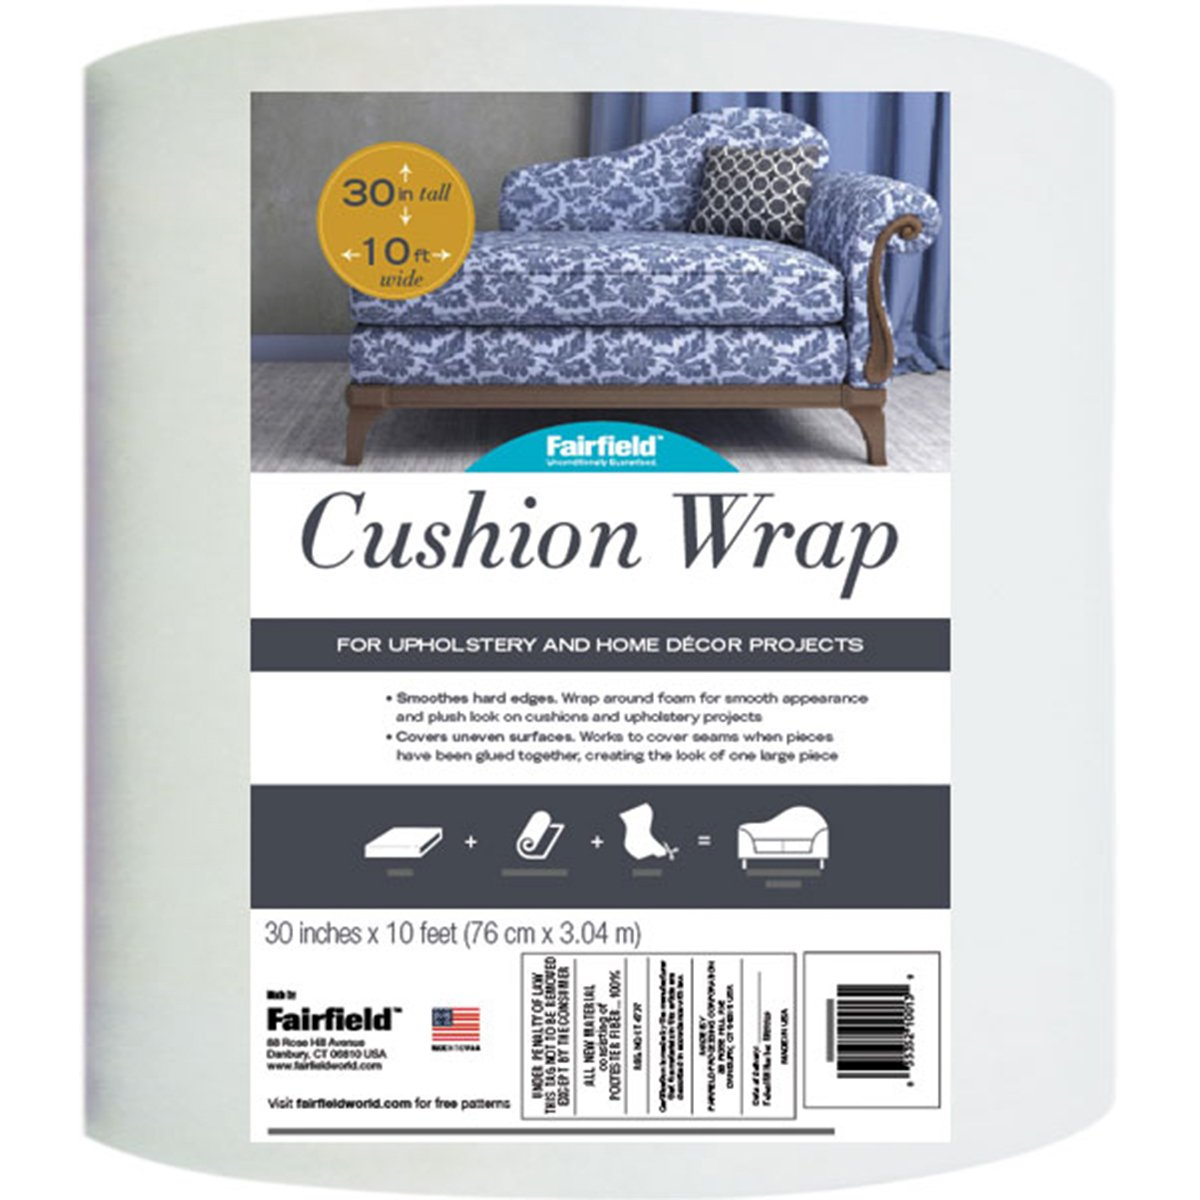 Cushion Wrap -30x10' Fob: Mi